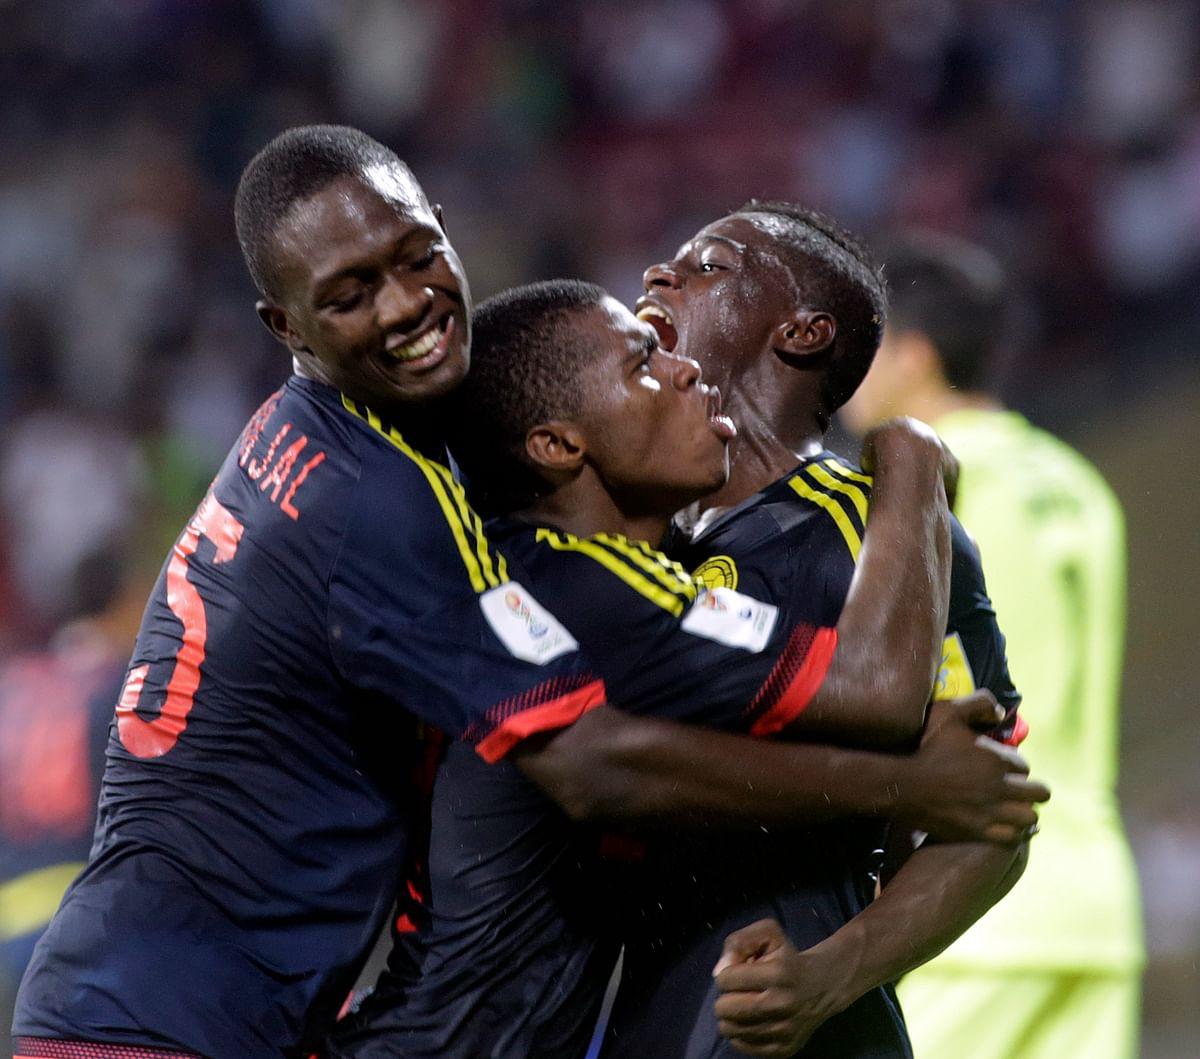 Colombia's Deiber Caicedo (C) celebrates with his teammates after scoring a goal.